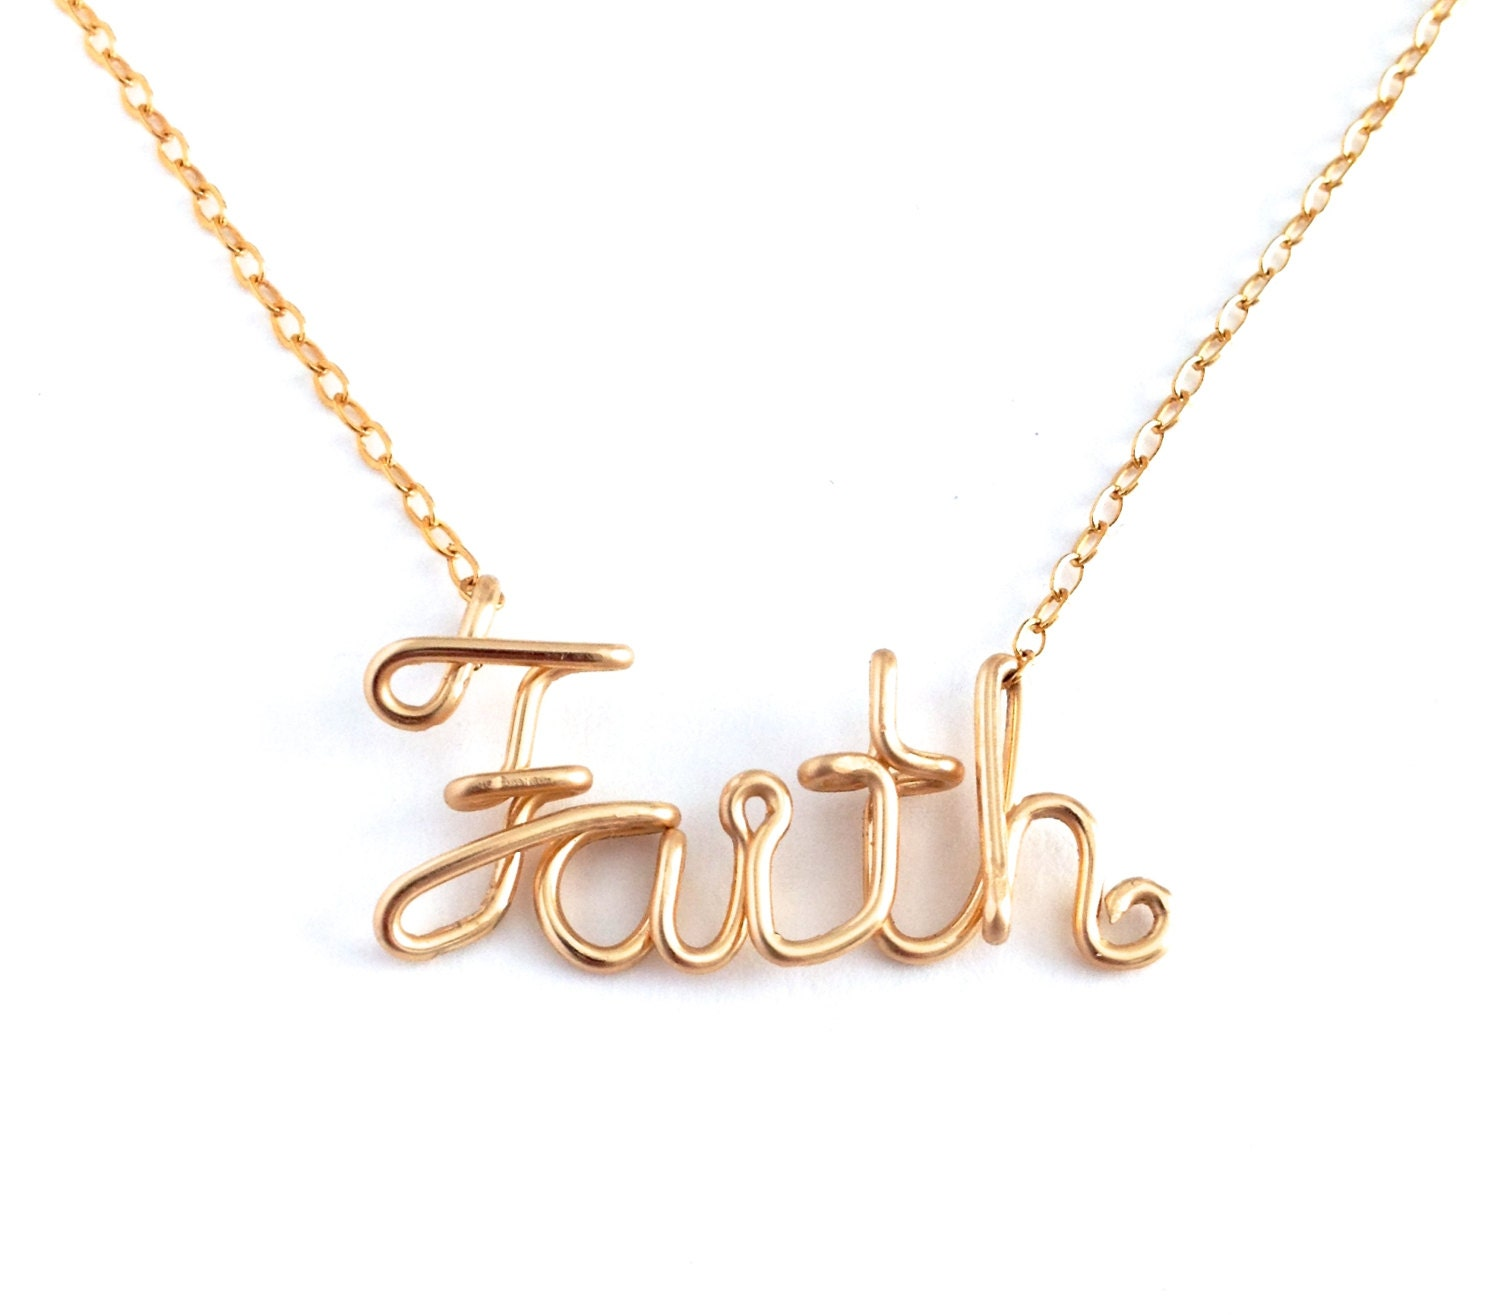 faith necklace gold faith necklace sale by azizajewelry